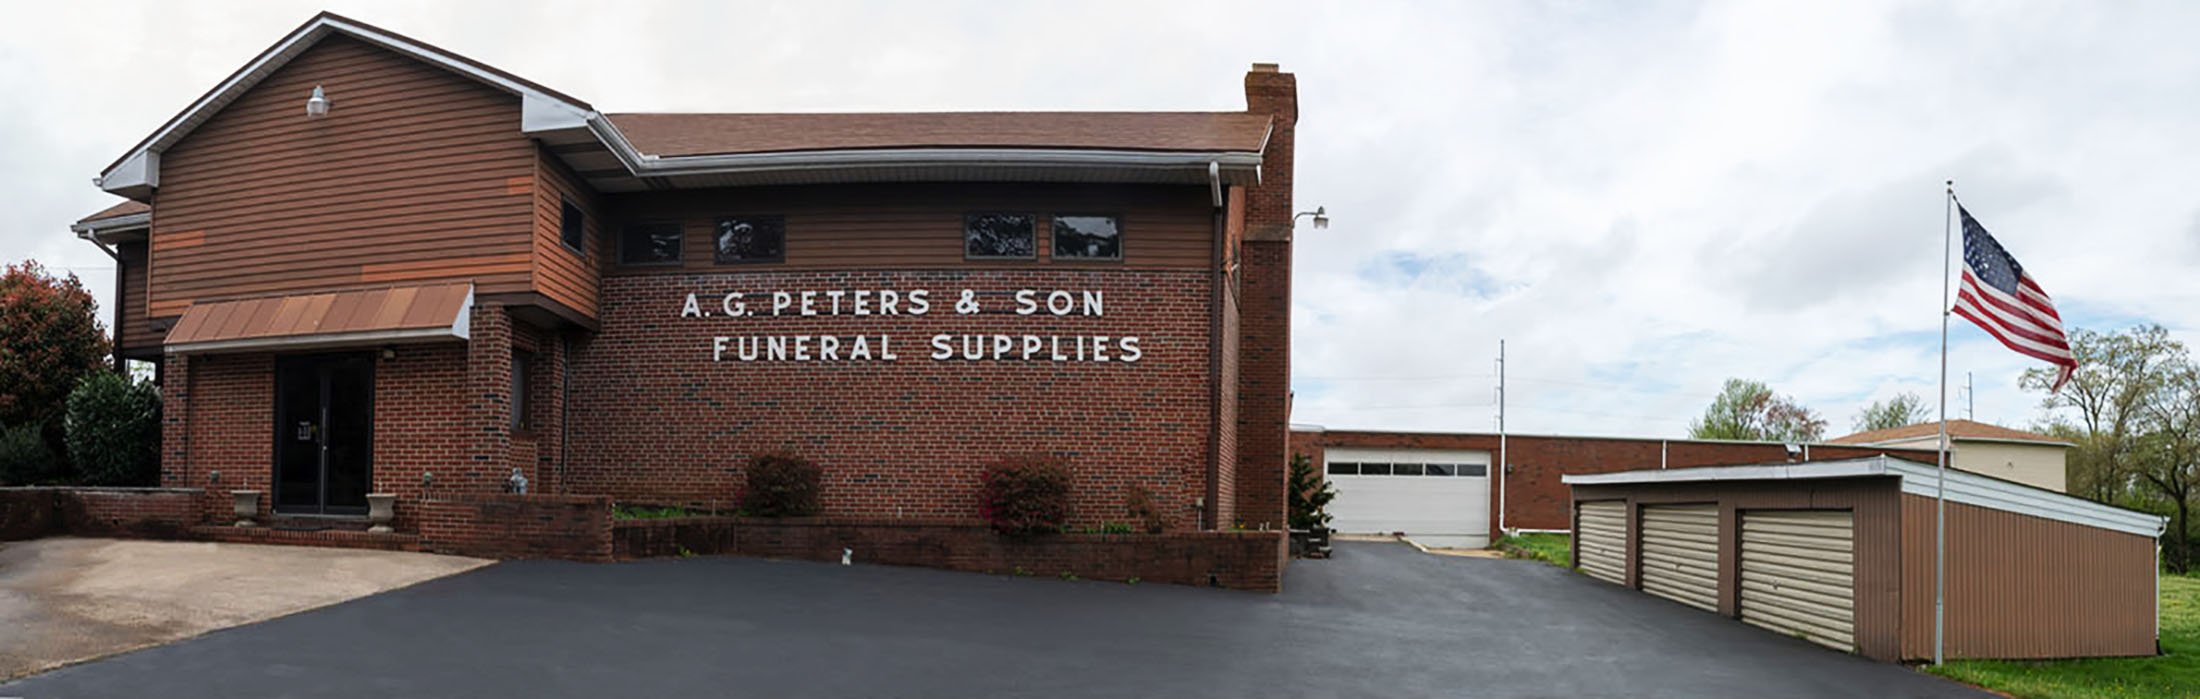 Funeral Supplies - AG Peters Funeral Supplies - Runnemede, NJ